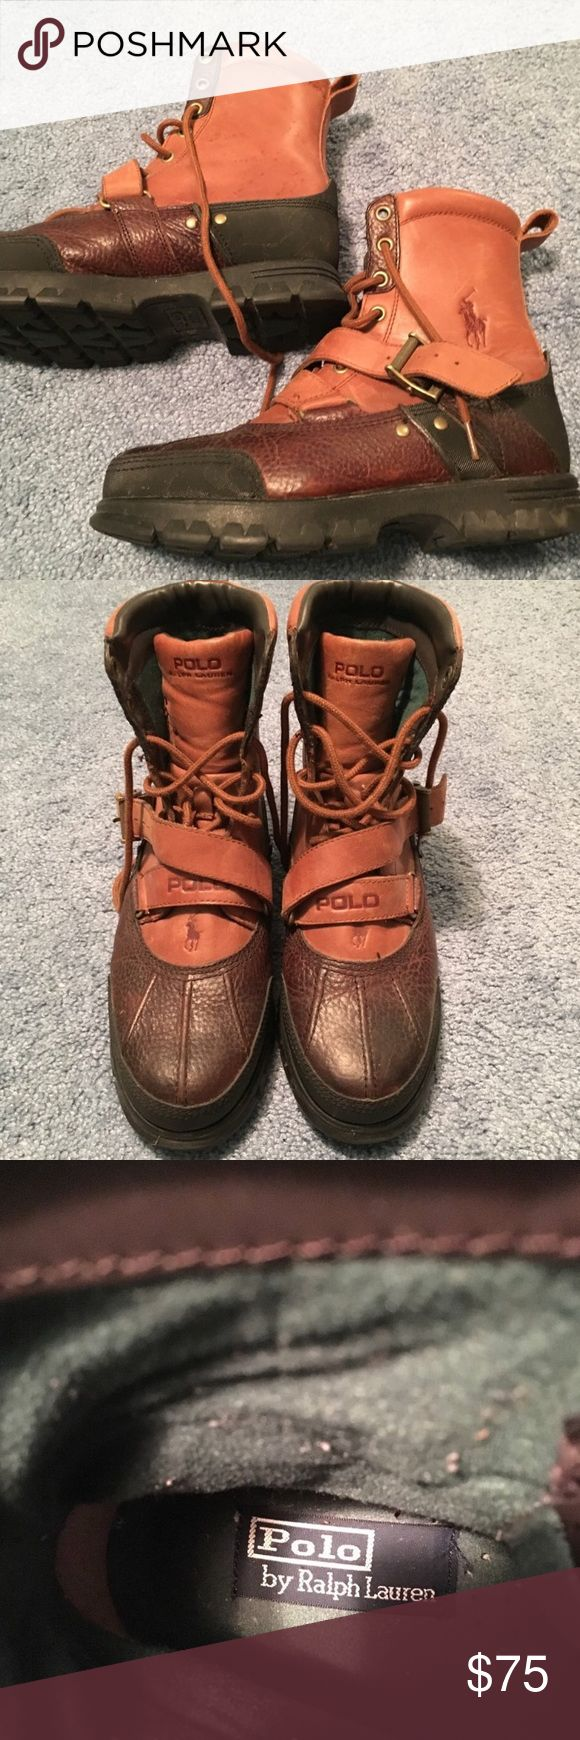 Polo Ralph Lauren winter boots Winter boots worn a couple times! Polo by Ralph Lauren. Slightly big on me would work better for a 9.5 women's size 7 men's Polo by Ralph Lauren Shoes Boots